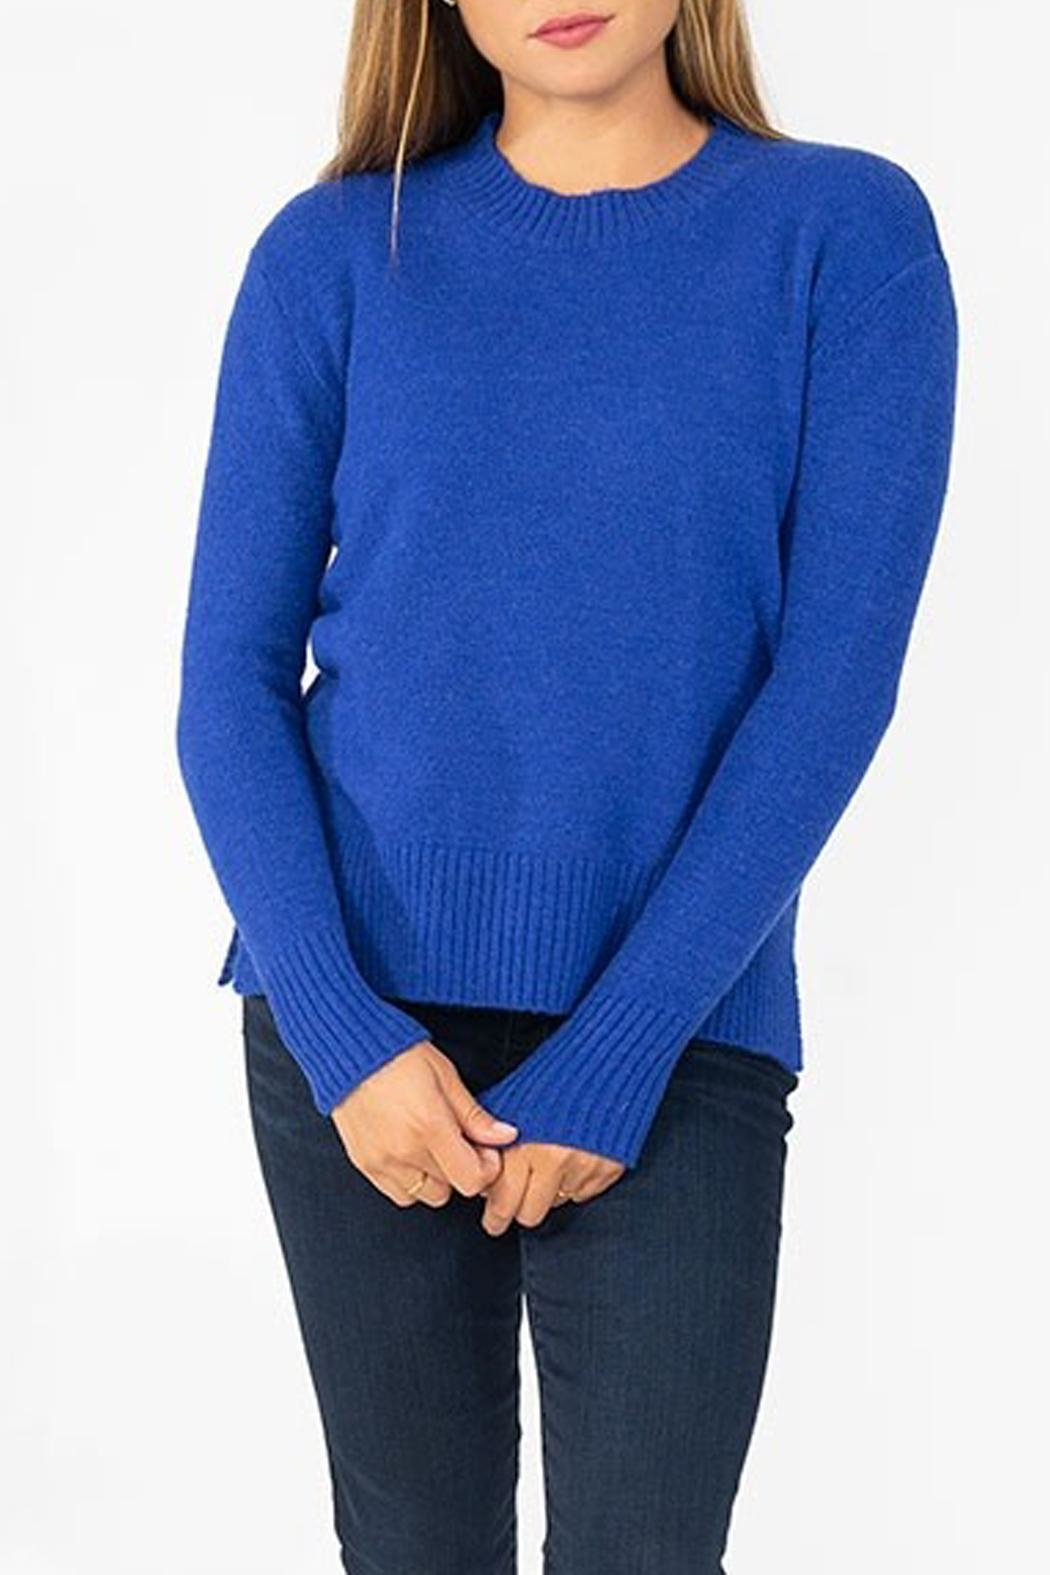 6372a1a6e9 Kut from the Kloth Pullover Sweater from New York by Luna — Shoptiques